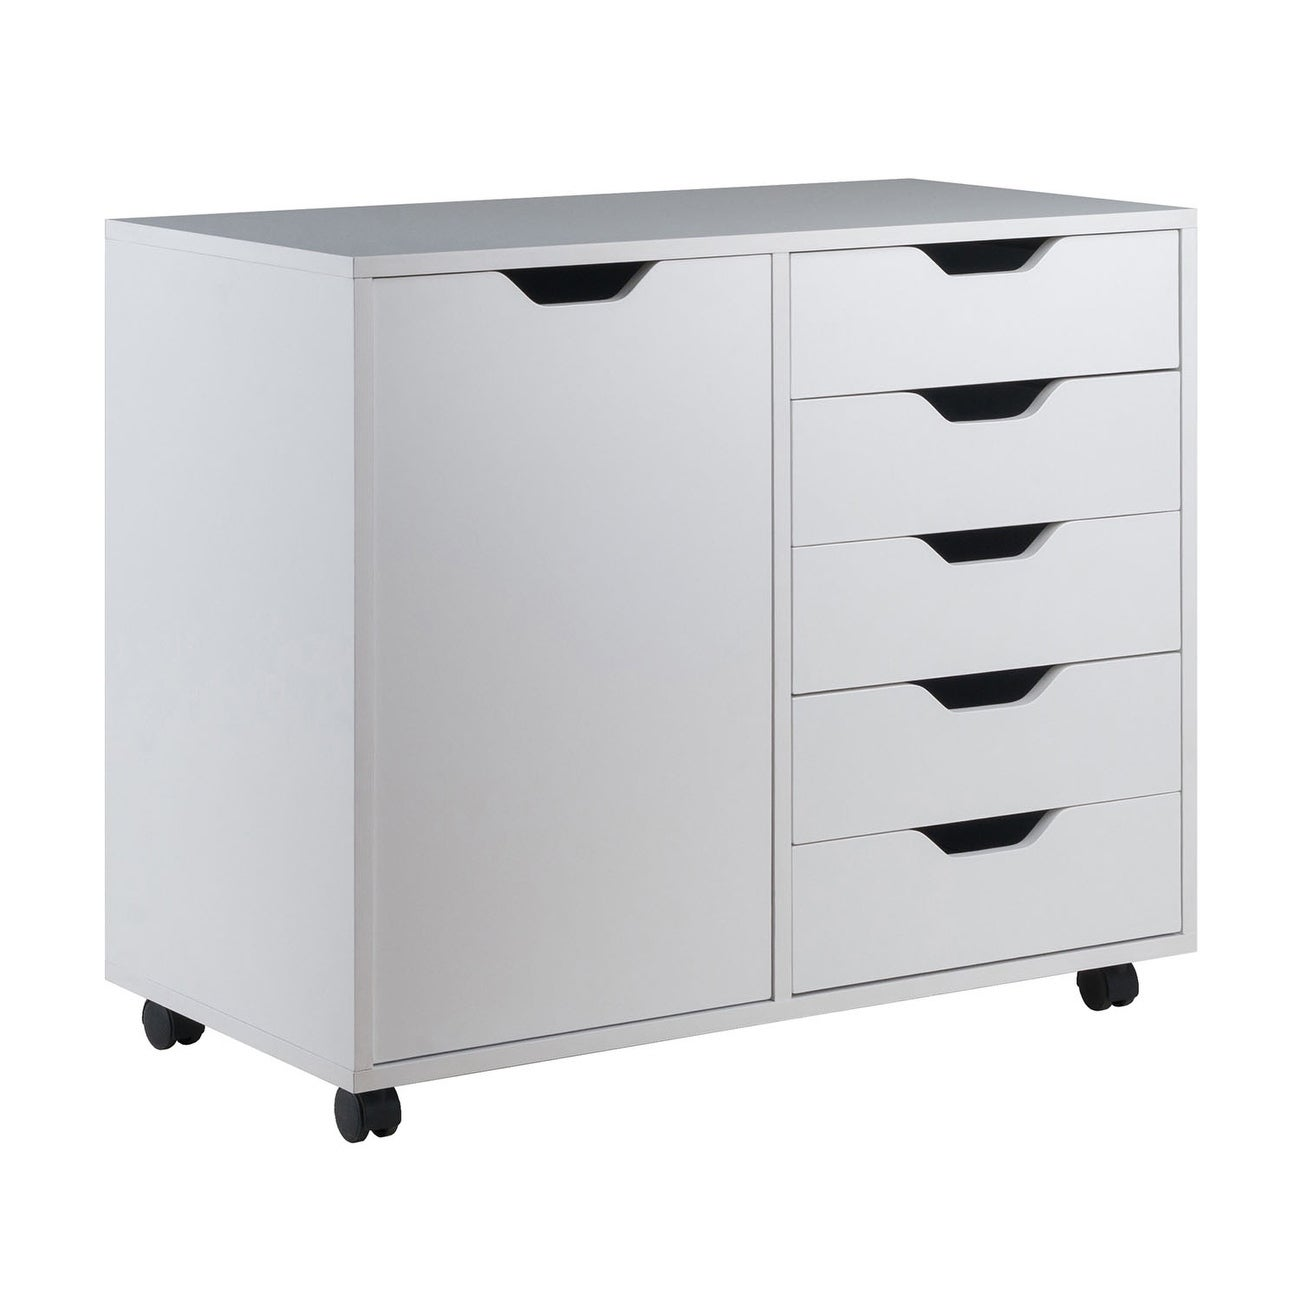 Winsome Wood Halifax Cabinet for Closet//Office Black 5 Drawers